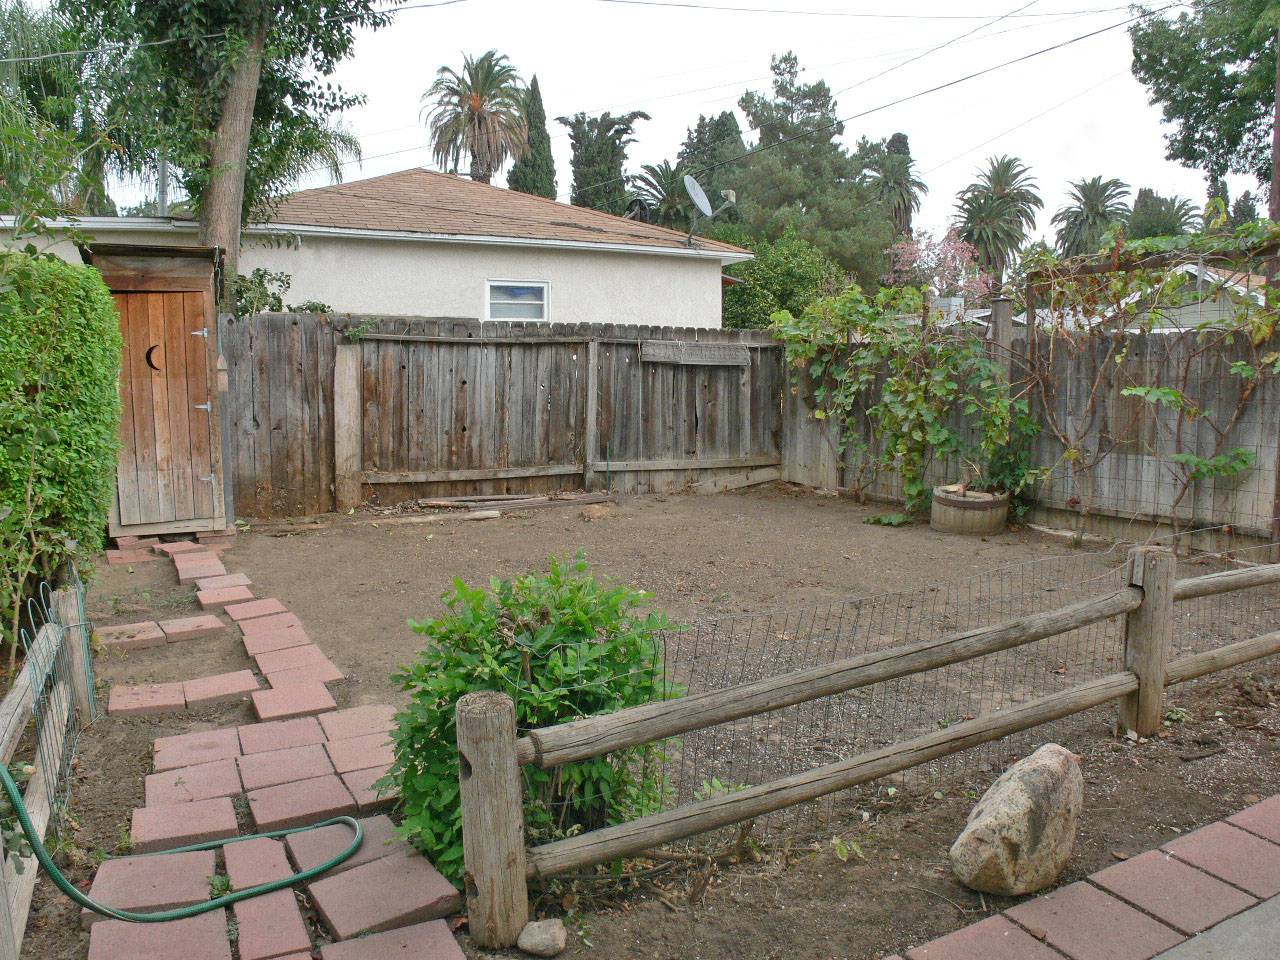 Separate Rustic Fenced Garden Area. Fenced Area To The Right Is For RV  Parking